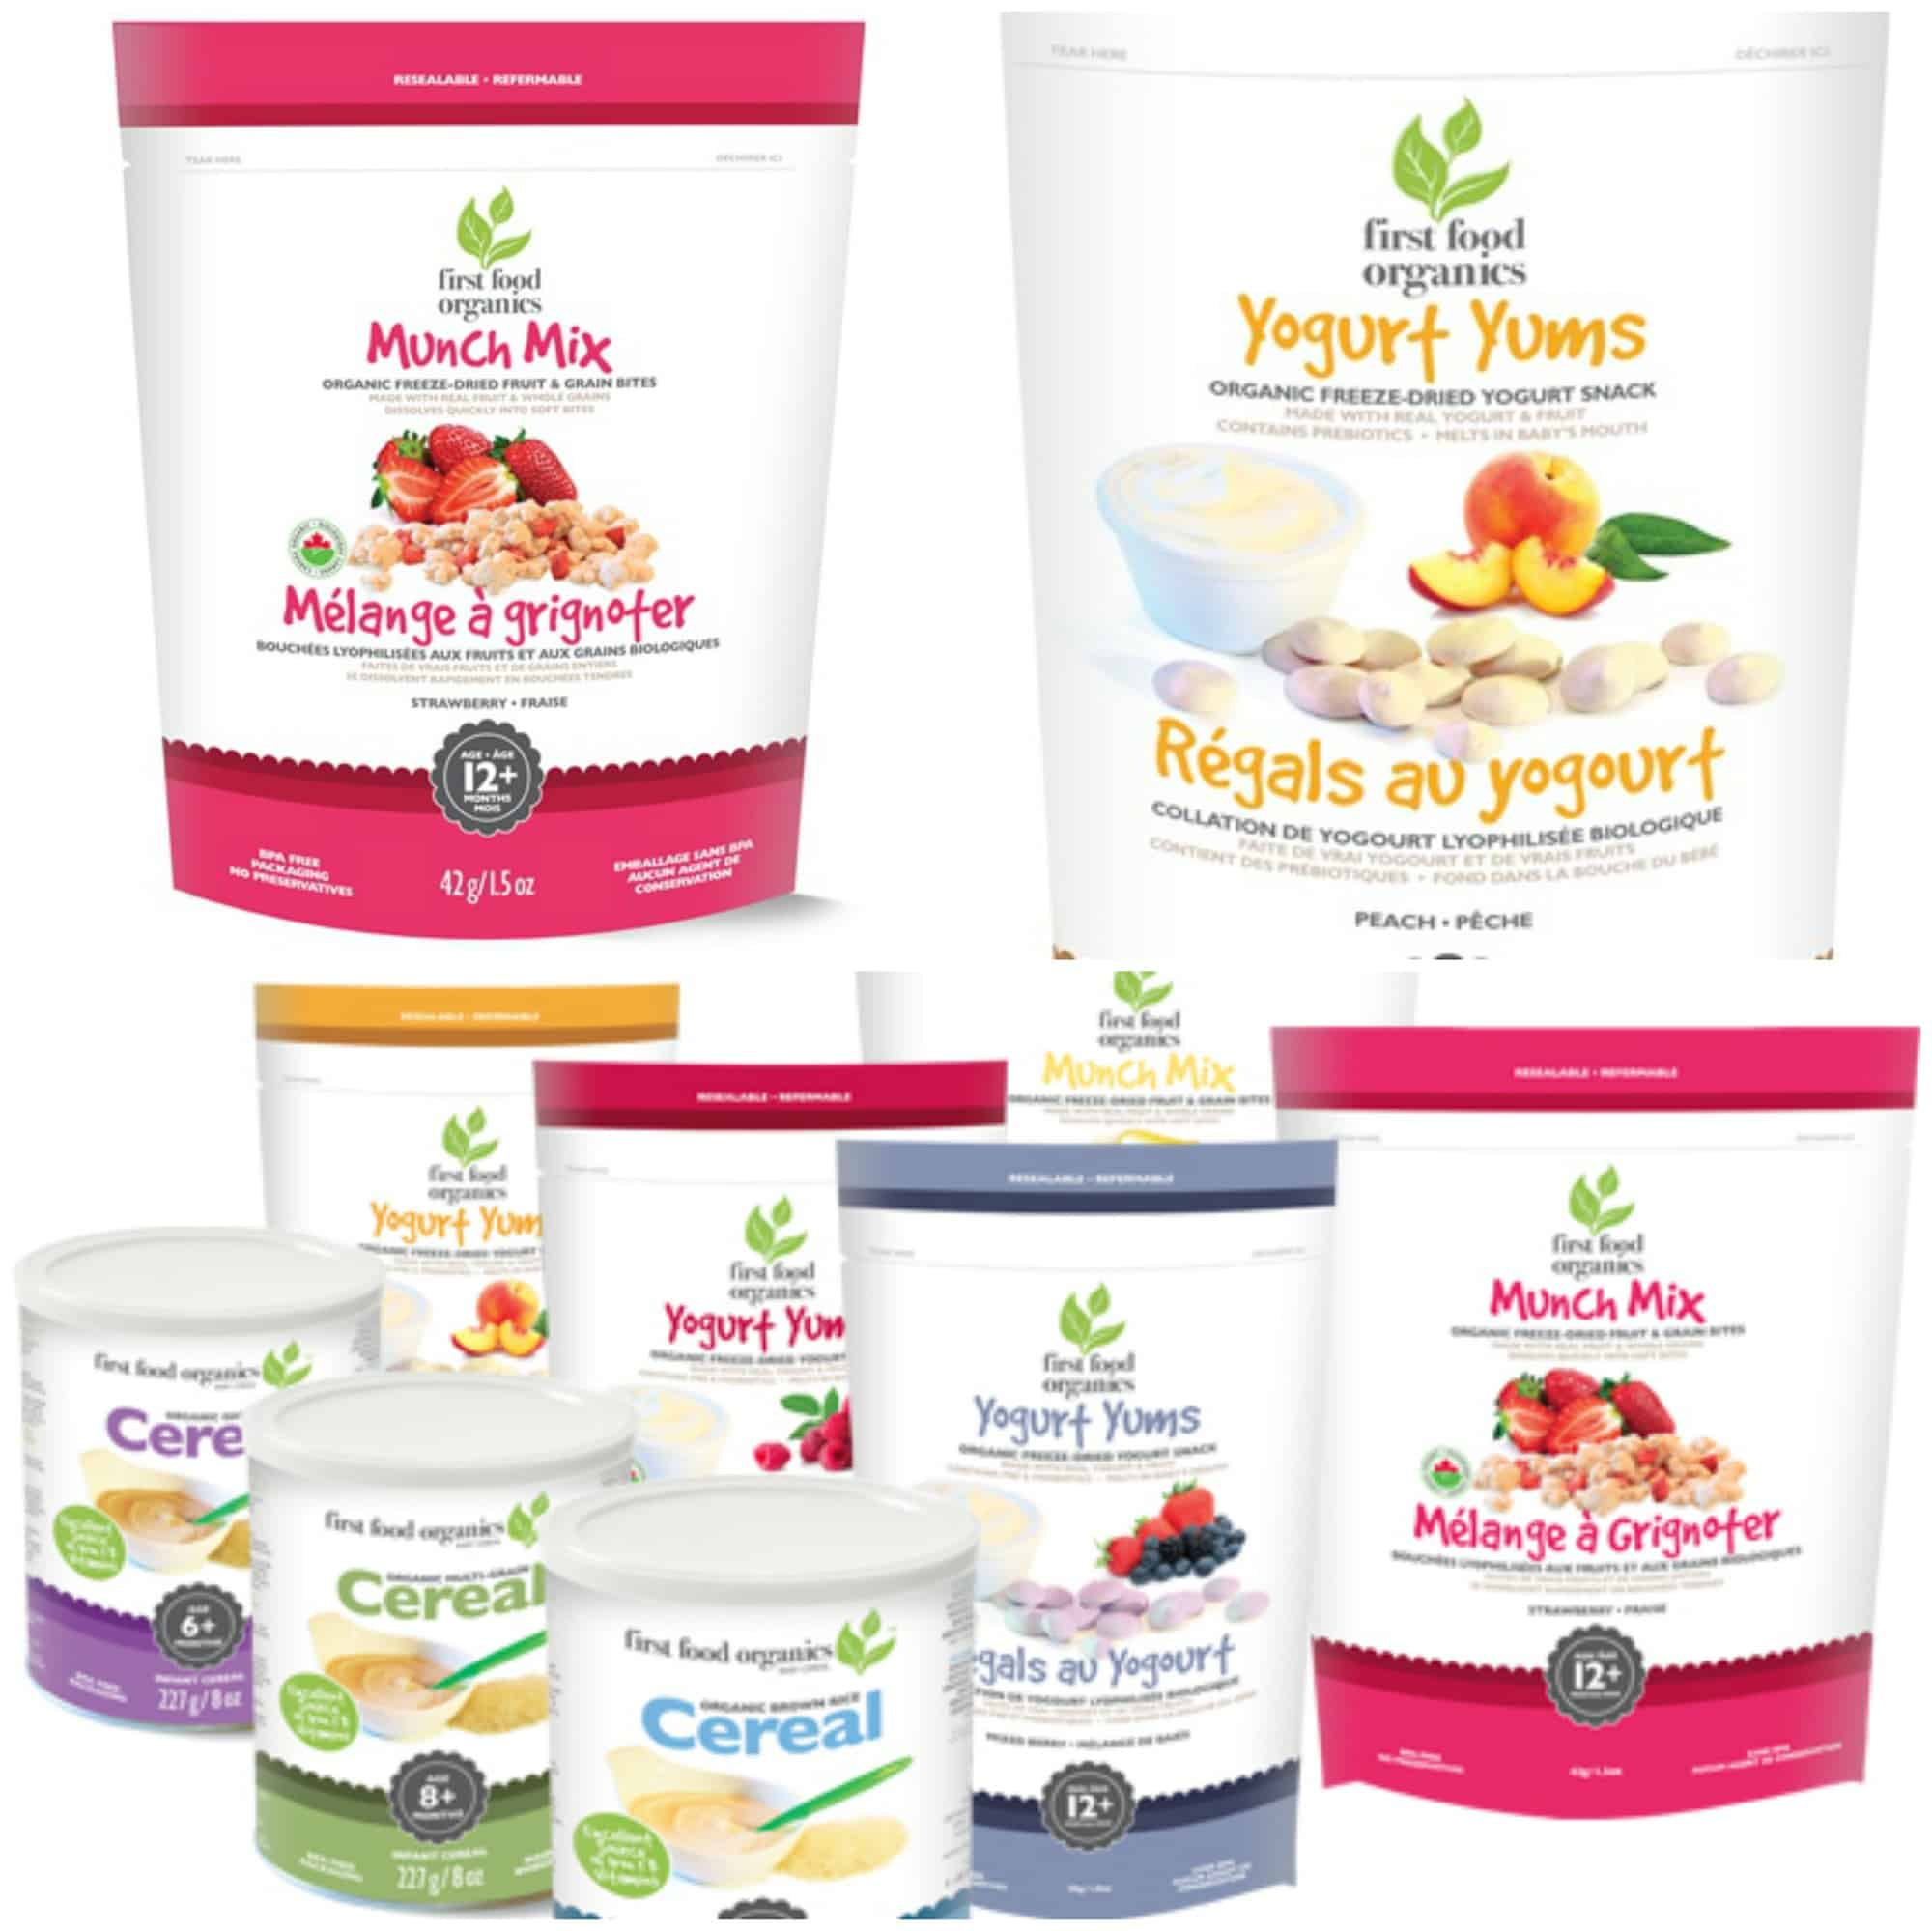 snacks for toddlers first food organics munch mix yogurt yums